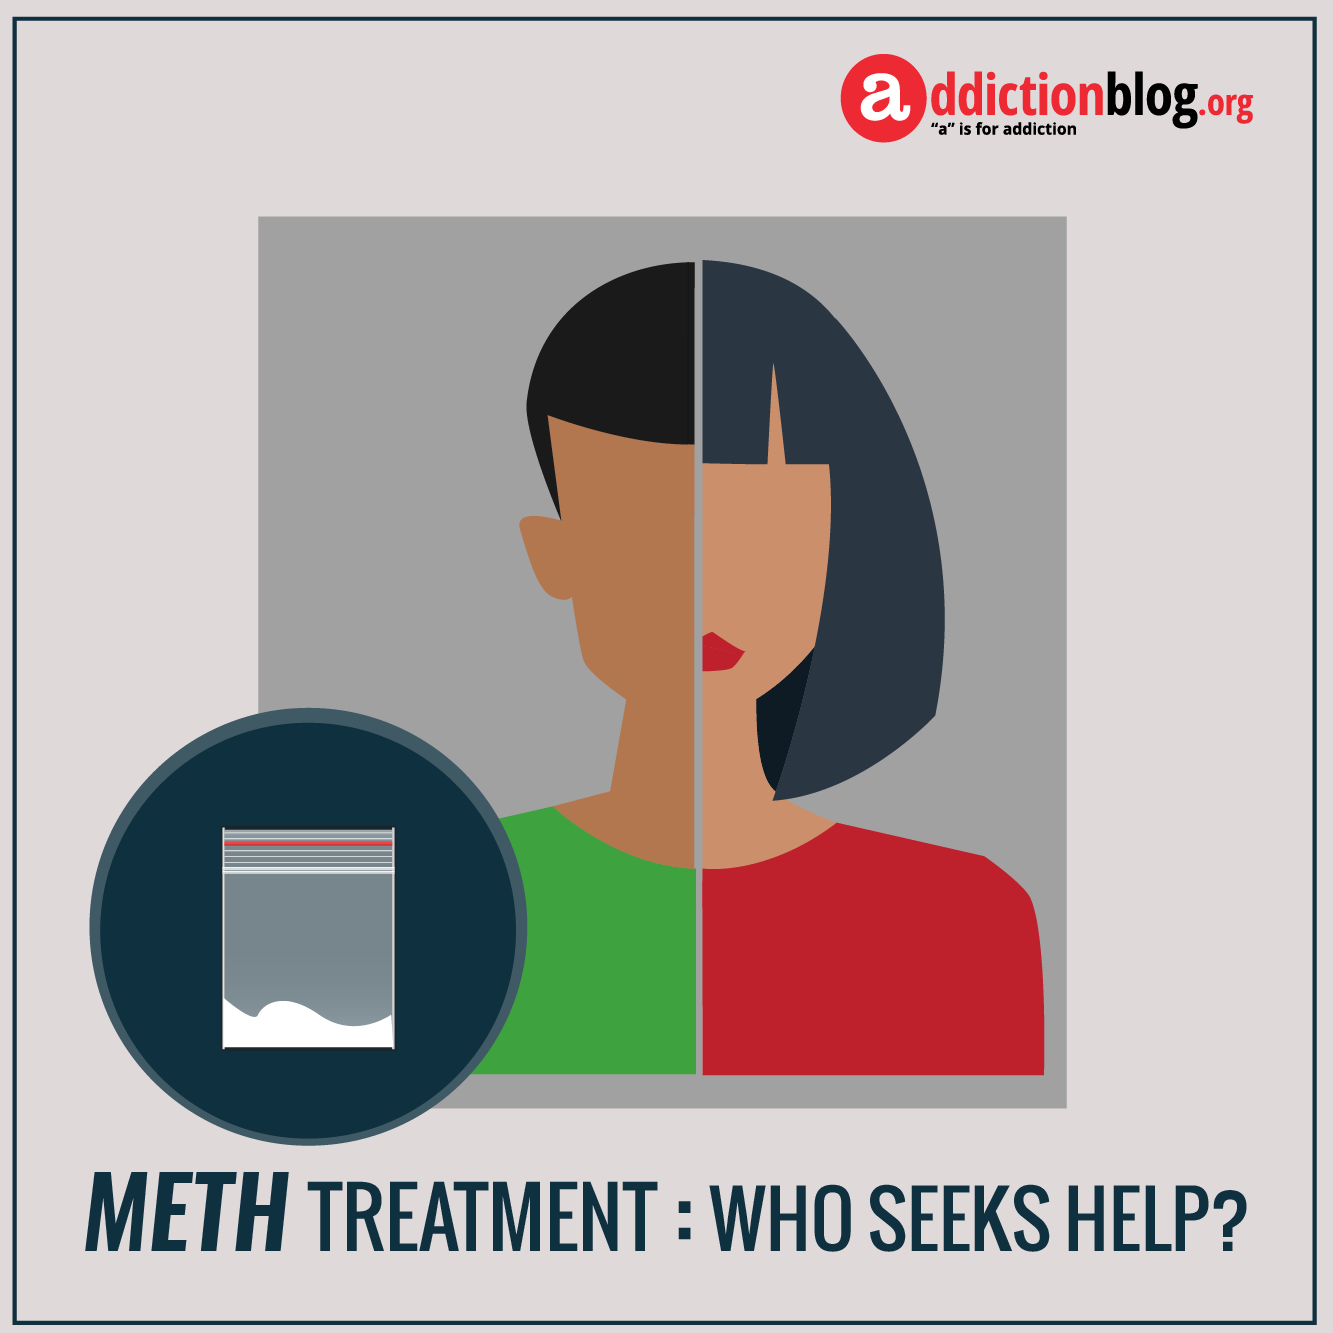 Meth treatment: Who gets help for methamphetamine addiction? (INFOGRAPHIC)